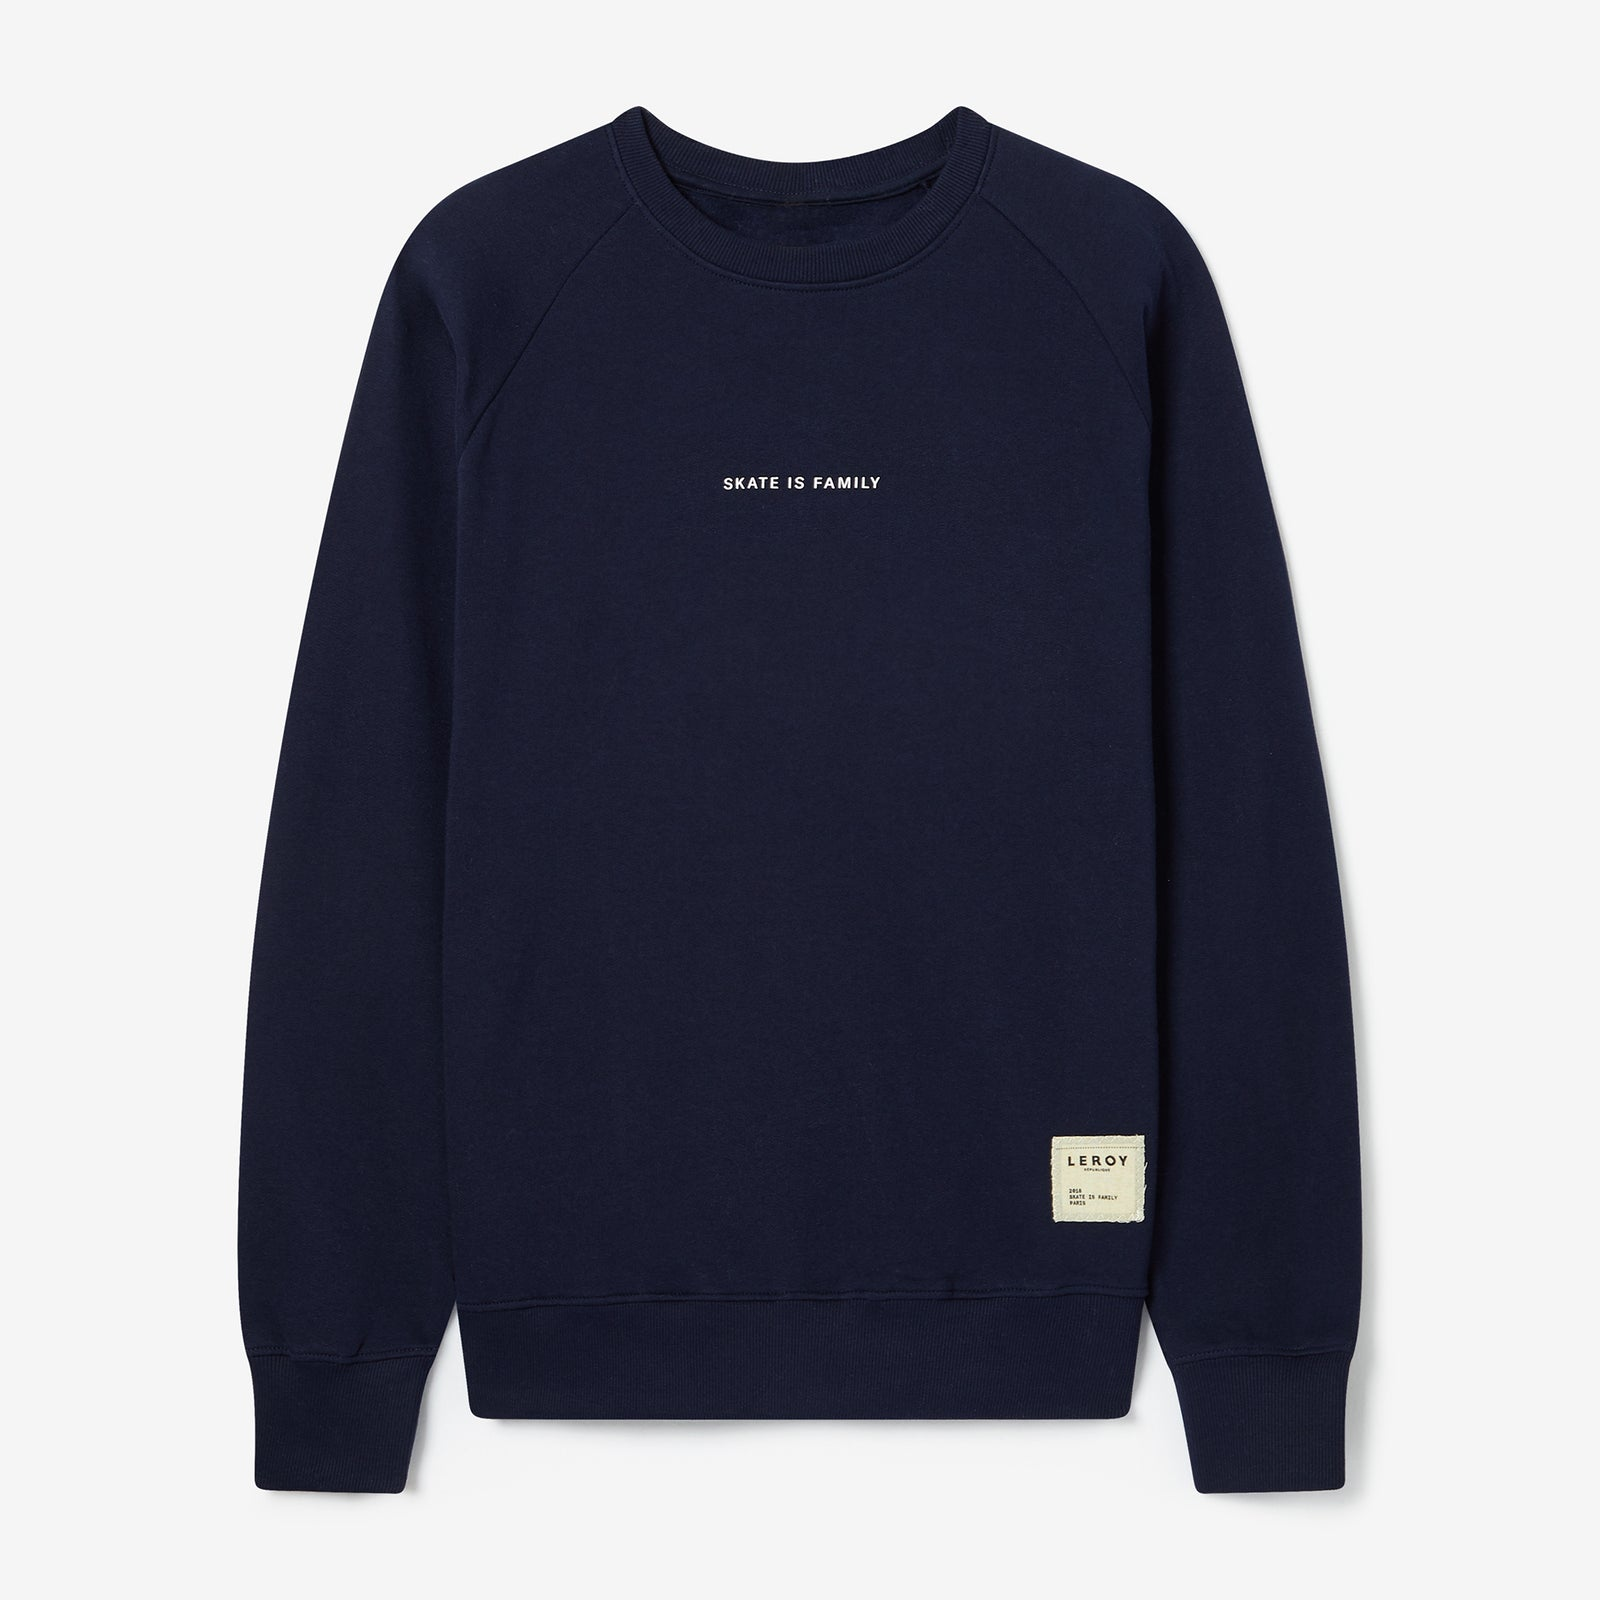 Skate is family crew neck